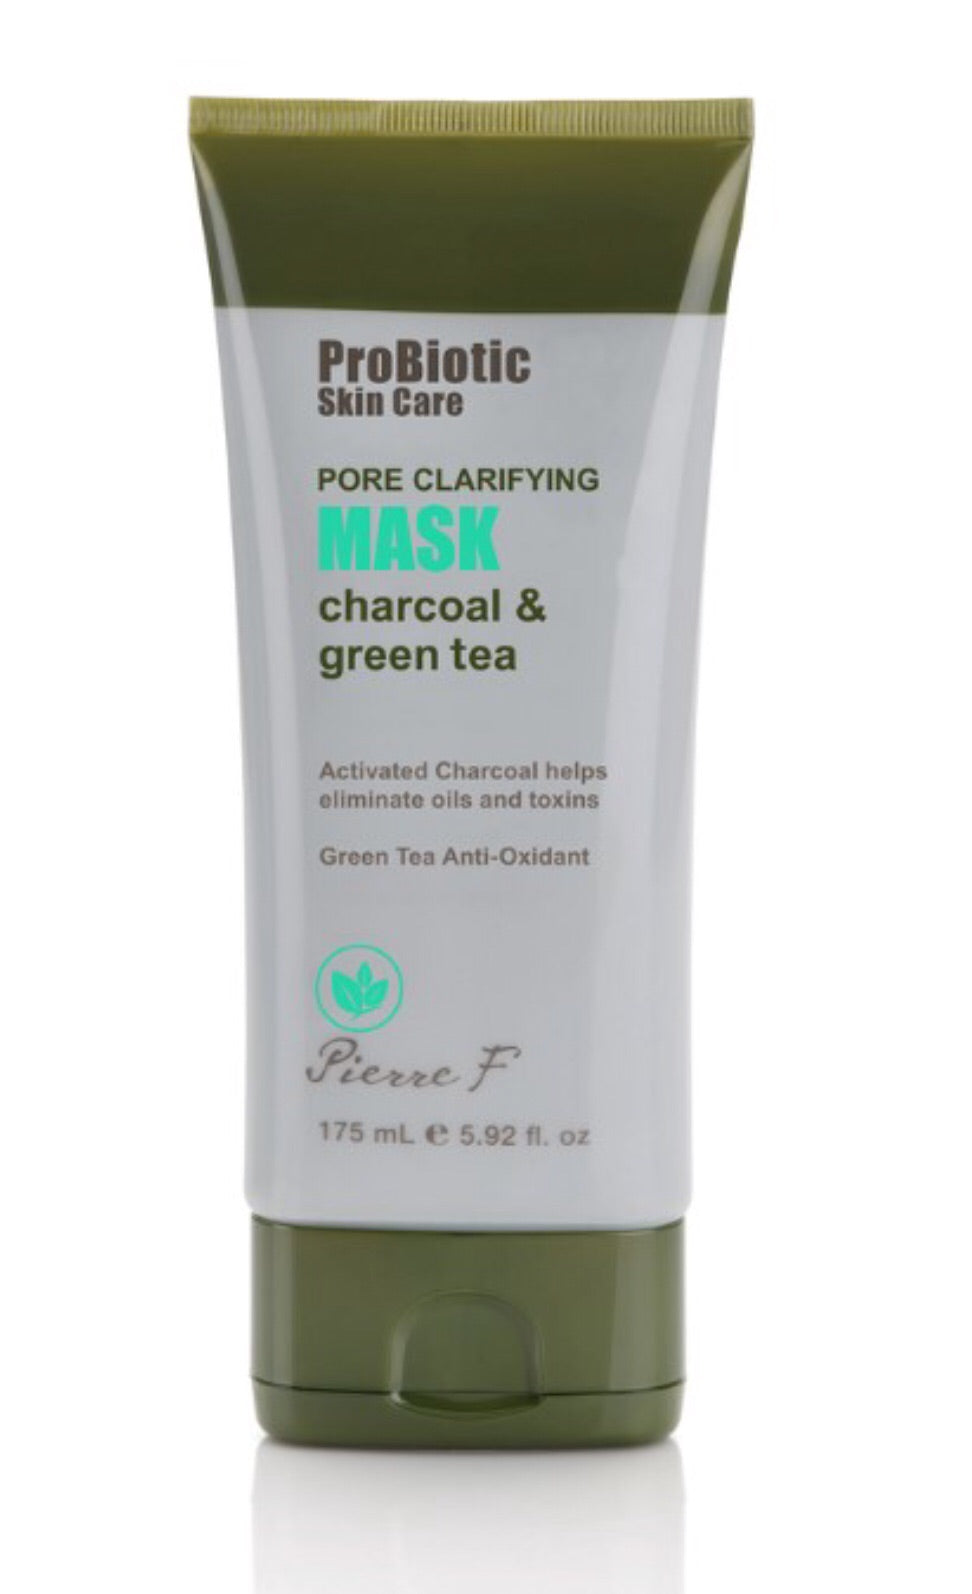 Probiotic Pore Clarifying Mask